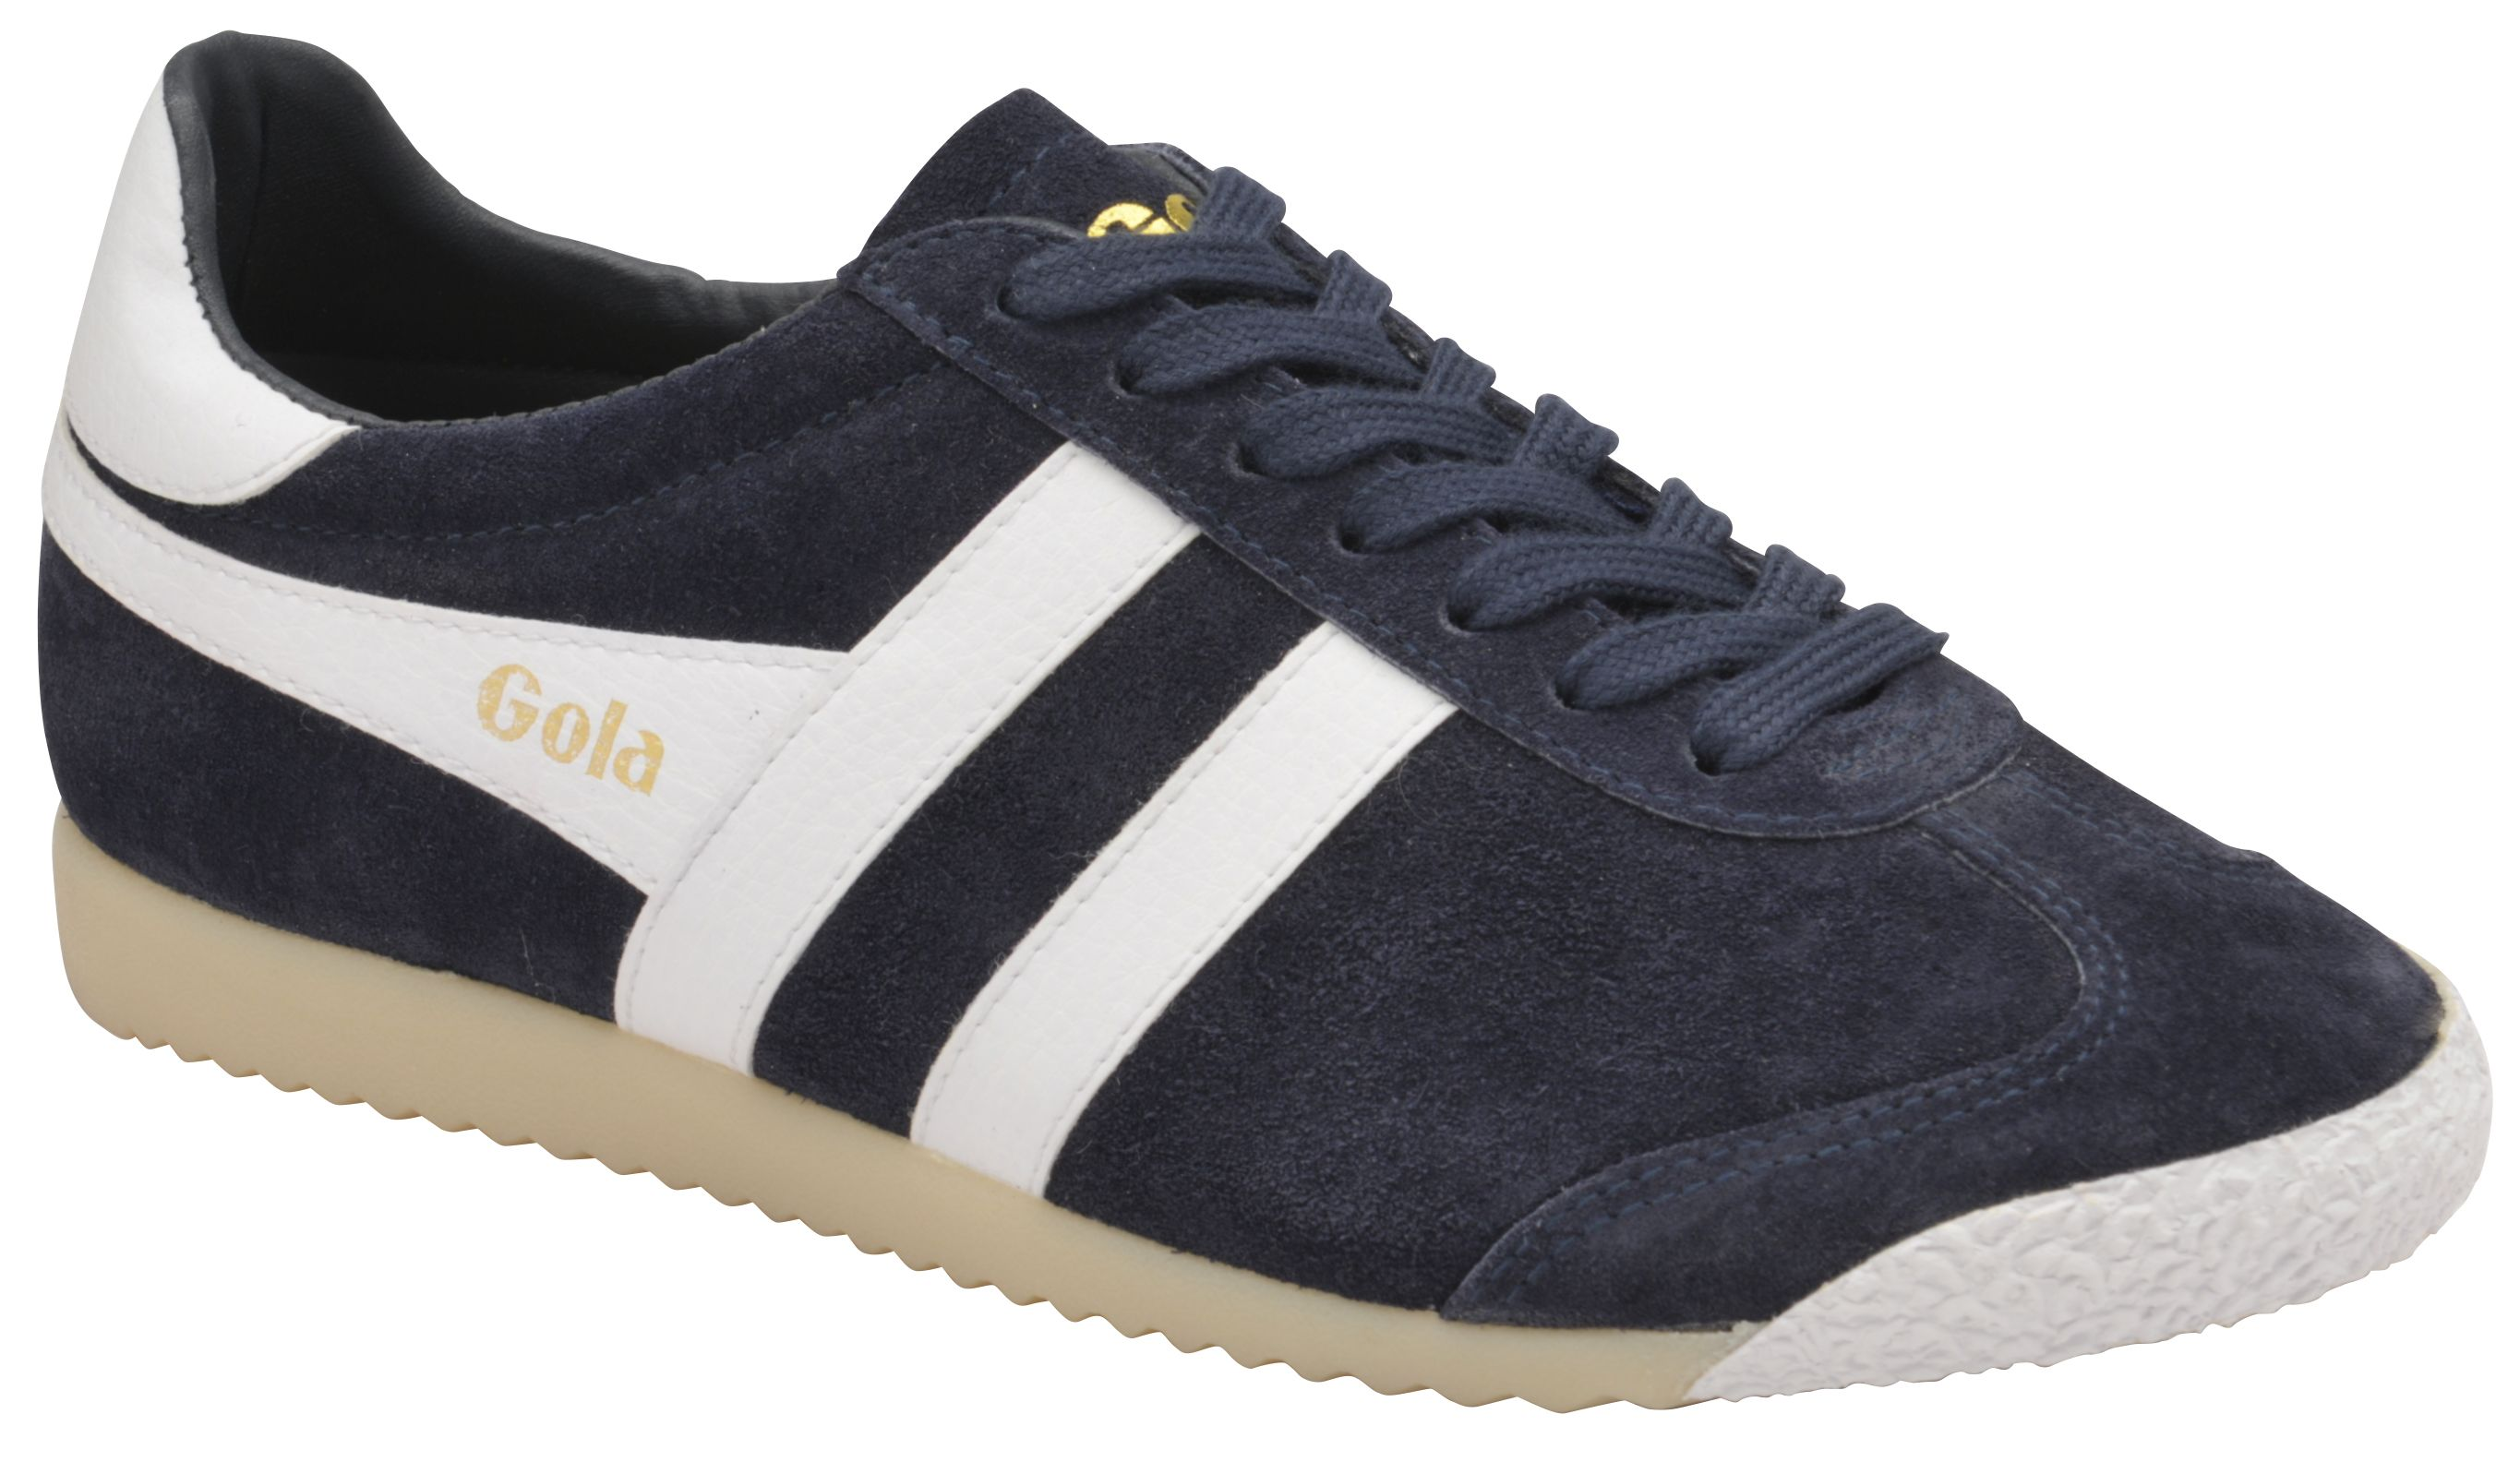 Gola Harrier 50 Suede Lace Up Trainers, Blue